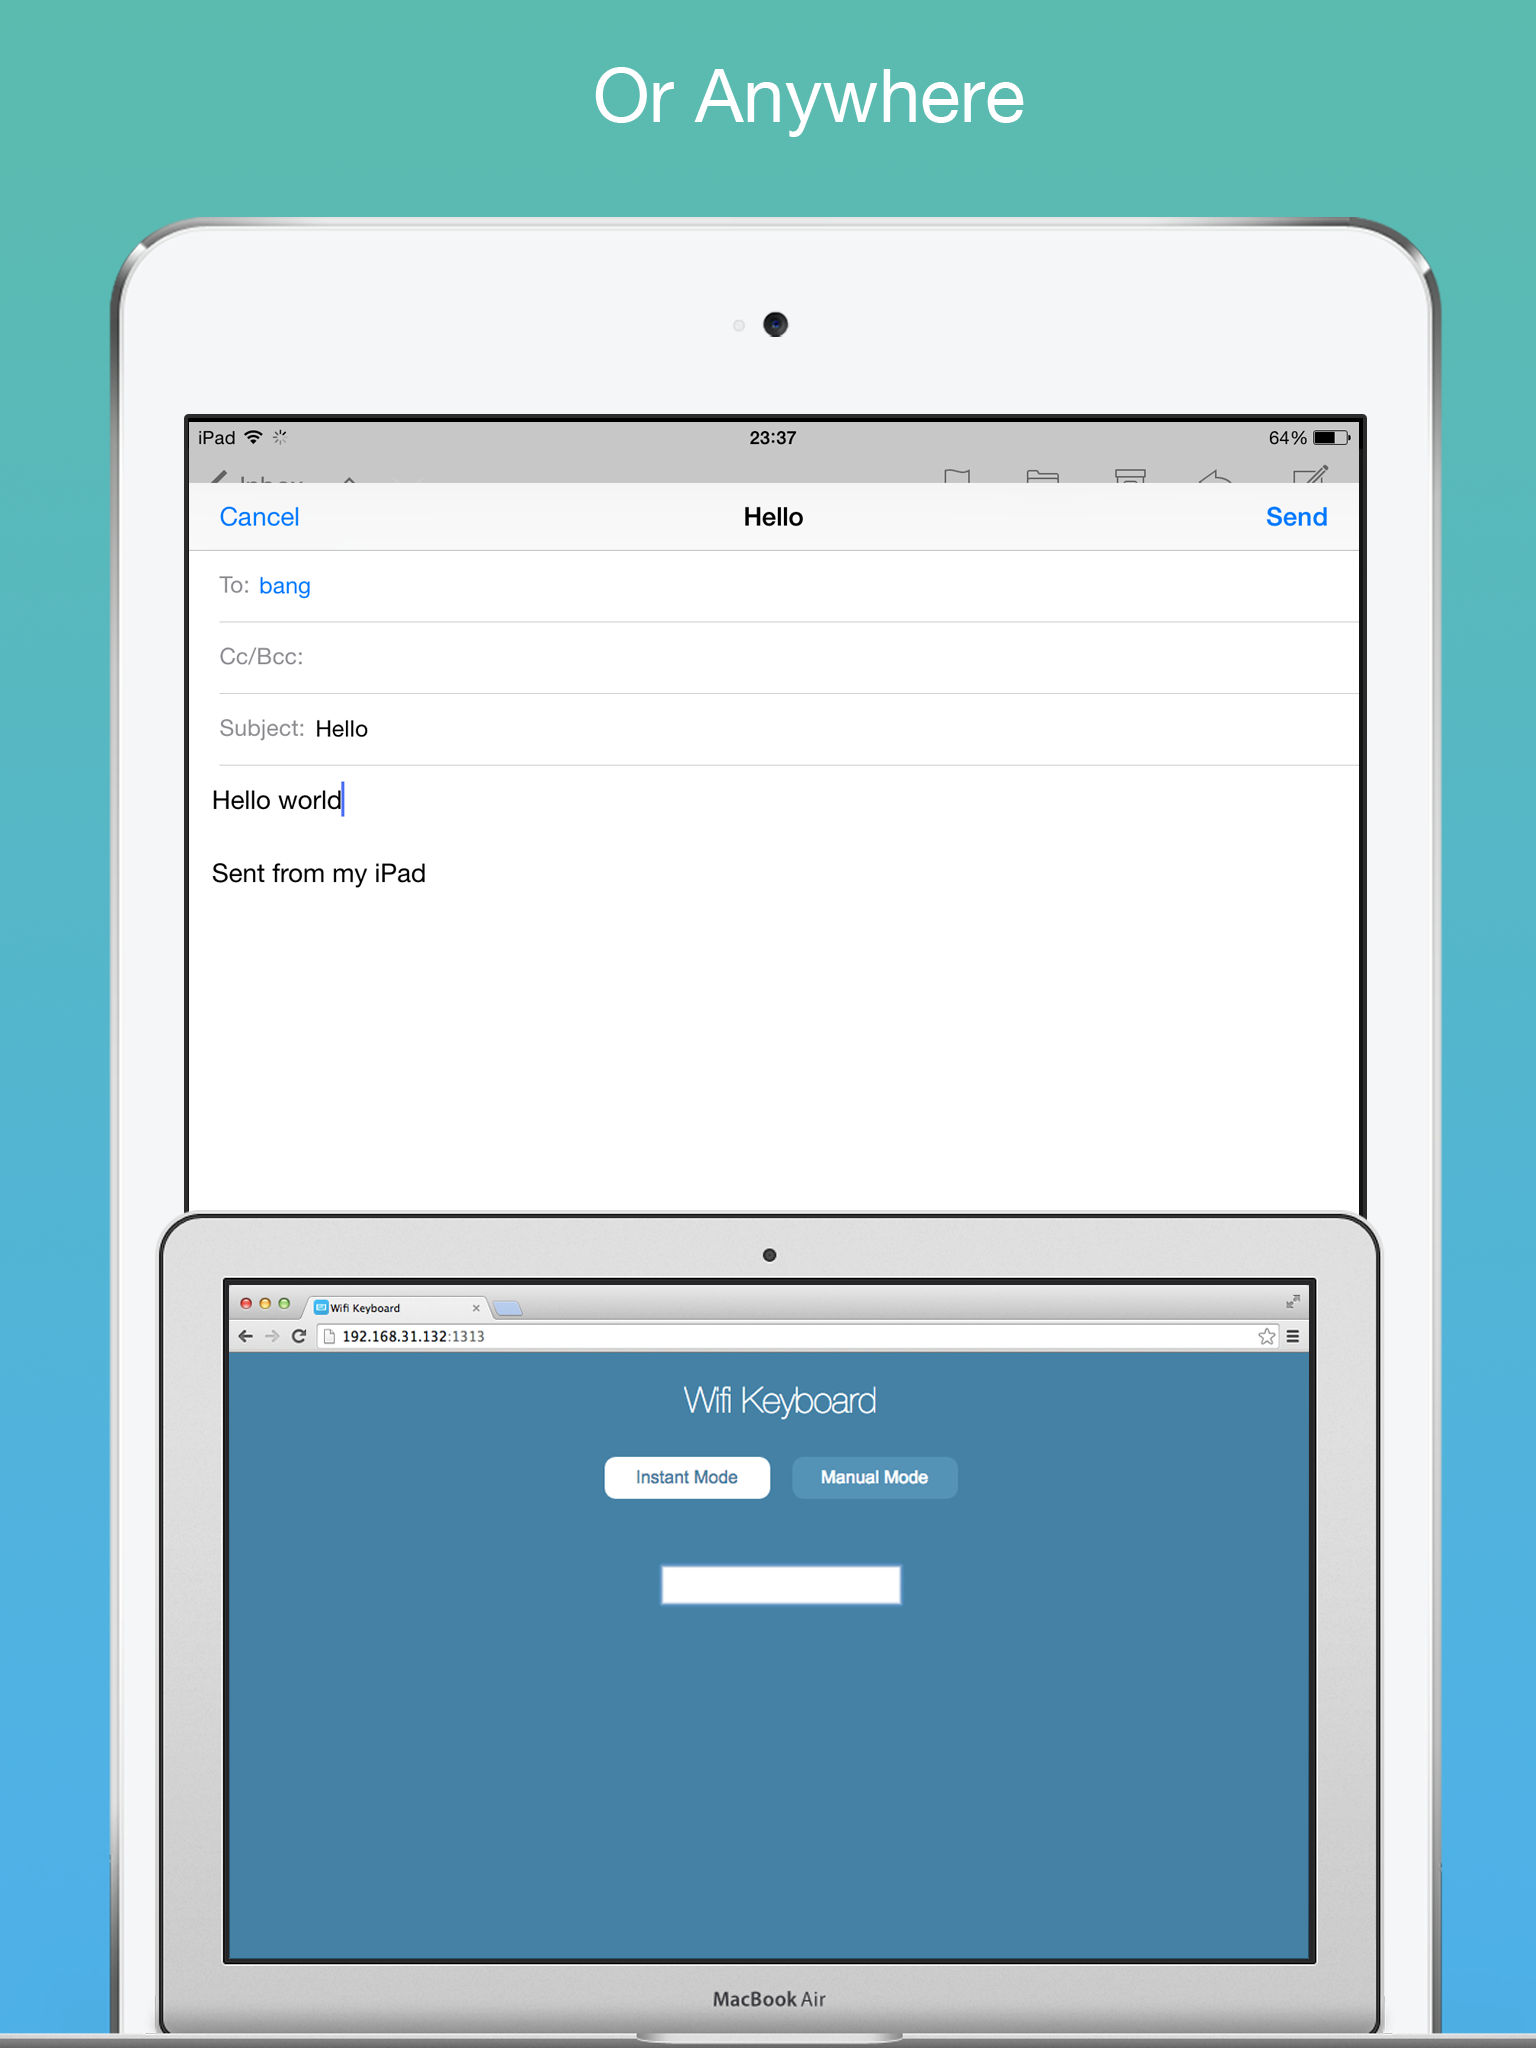 Wifi Keyboard - Connect your keyboard to iPhone/iPad with